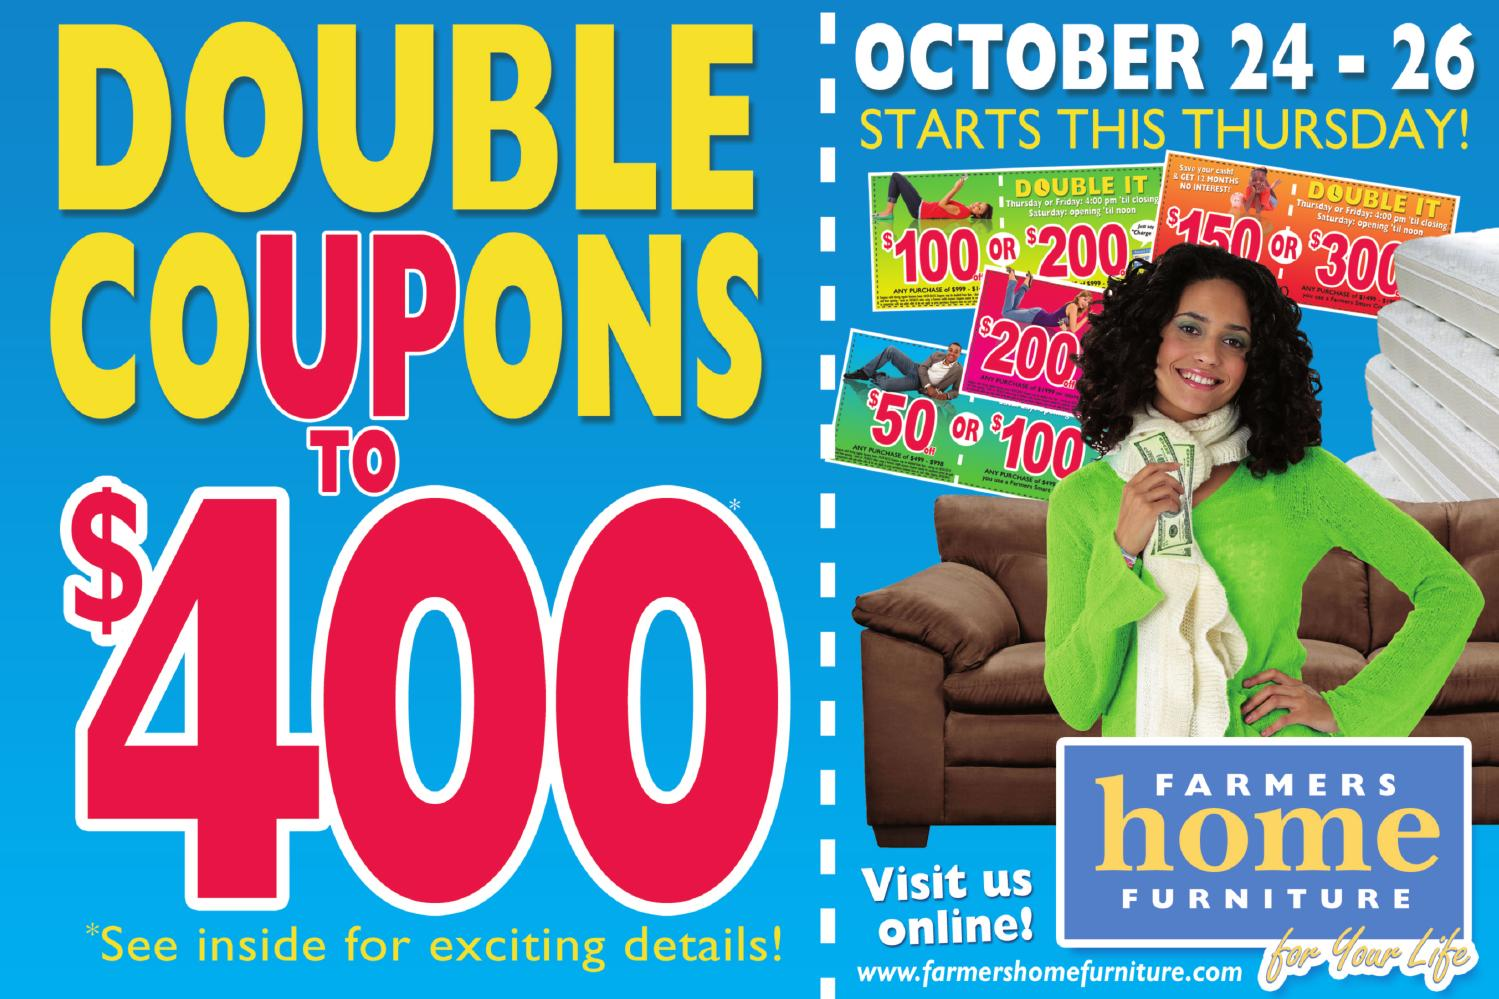 Double Coupon Sale By Farmers Home Furniture Issuu